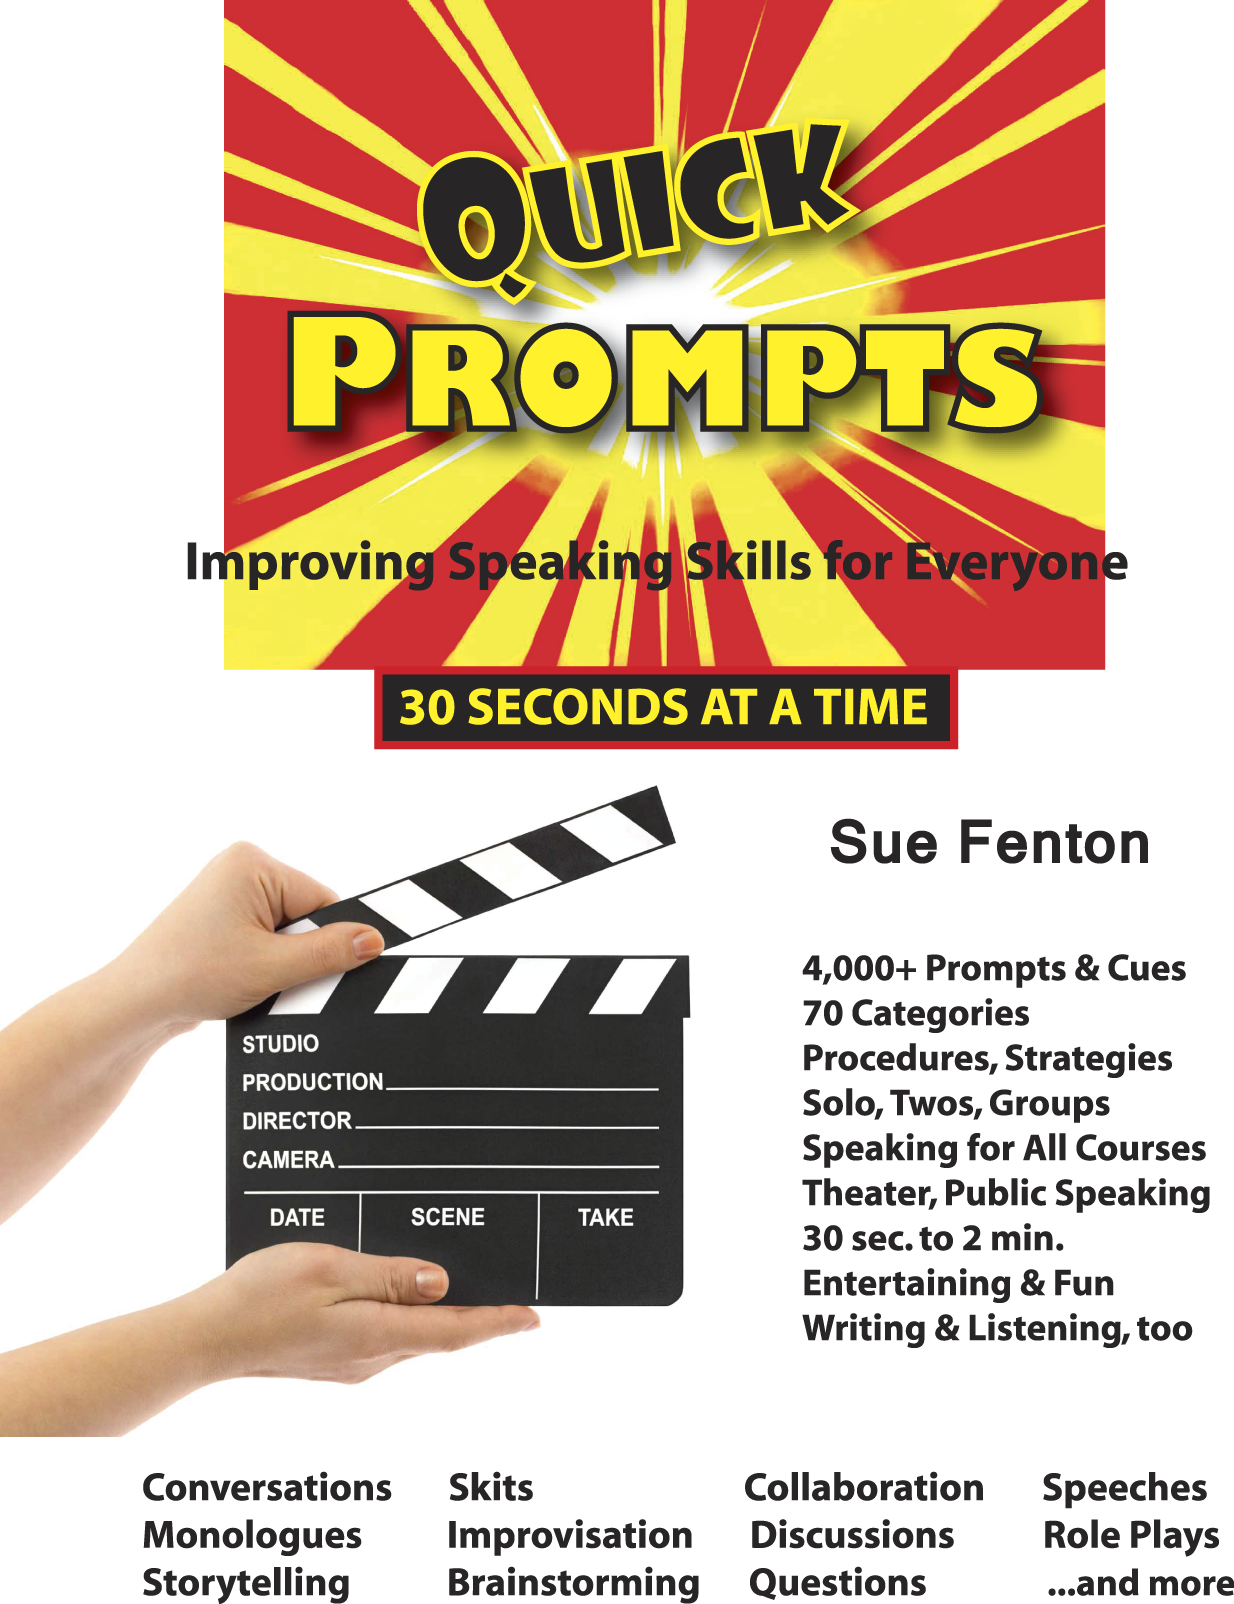 QUICK PROMPTS Improving Speaking Skills for Everyone [MFP